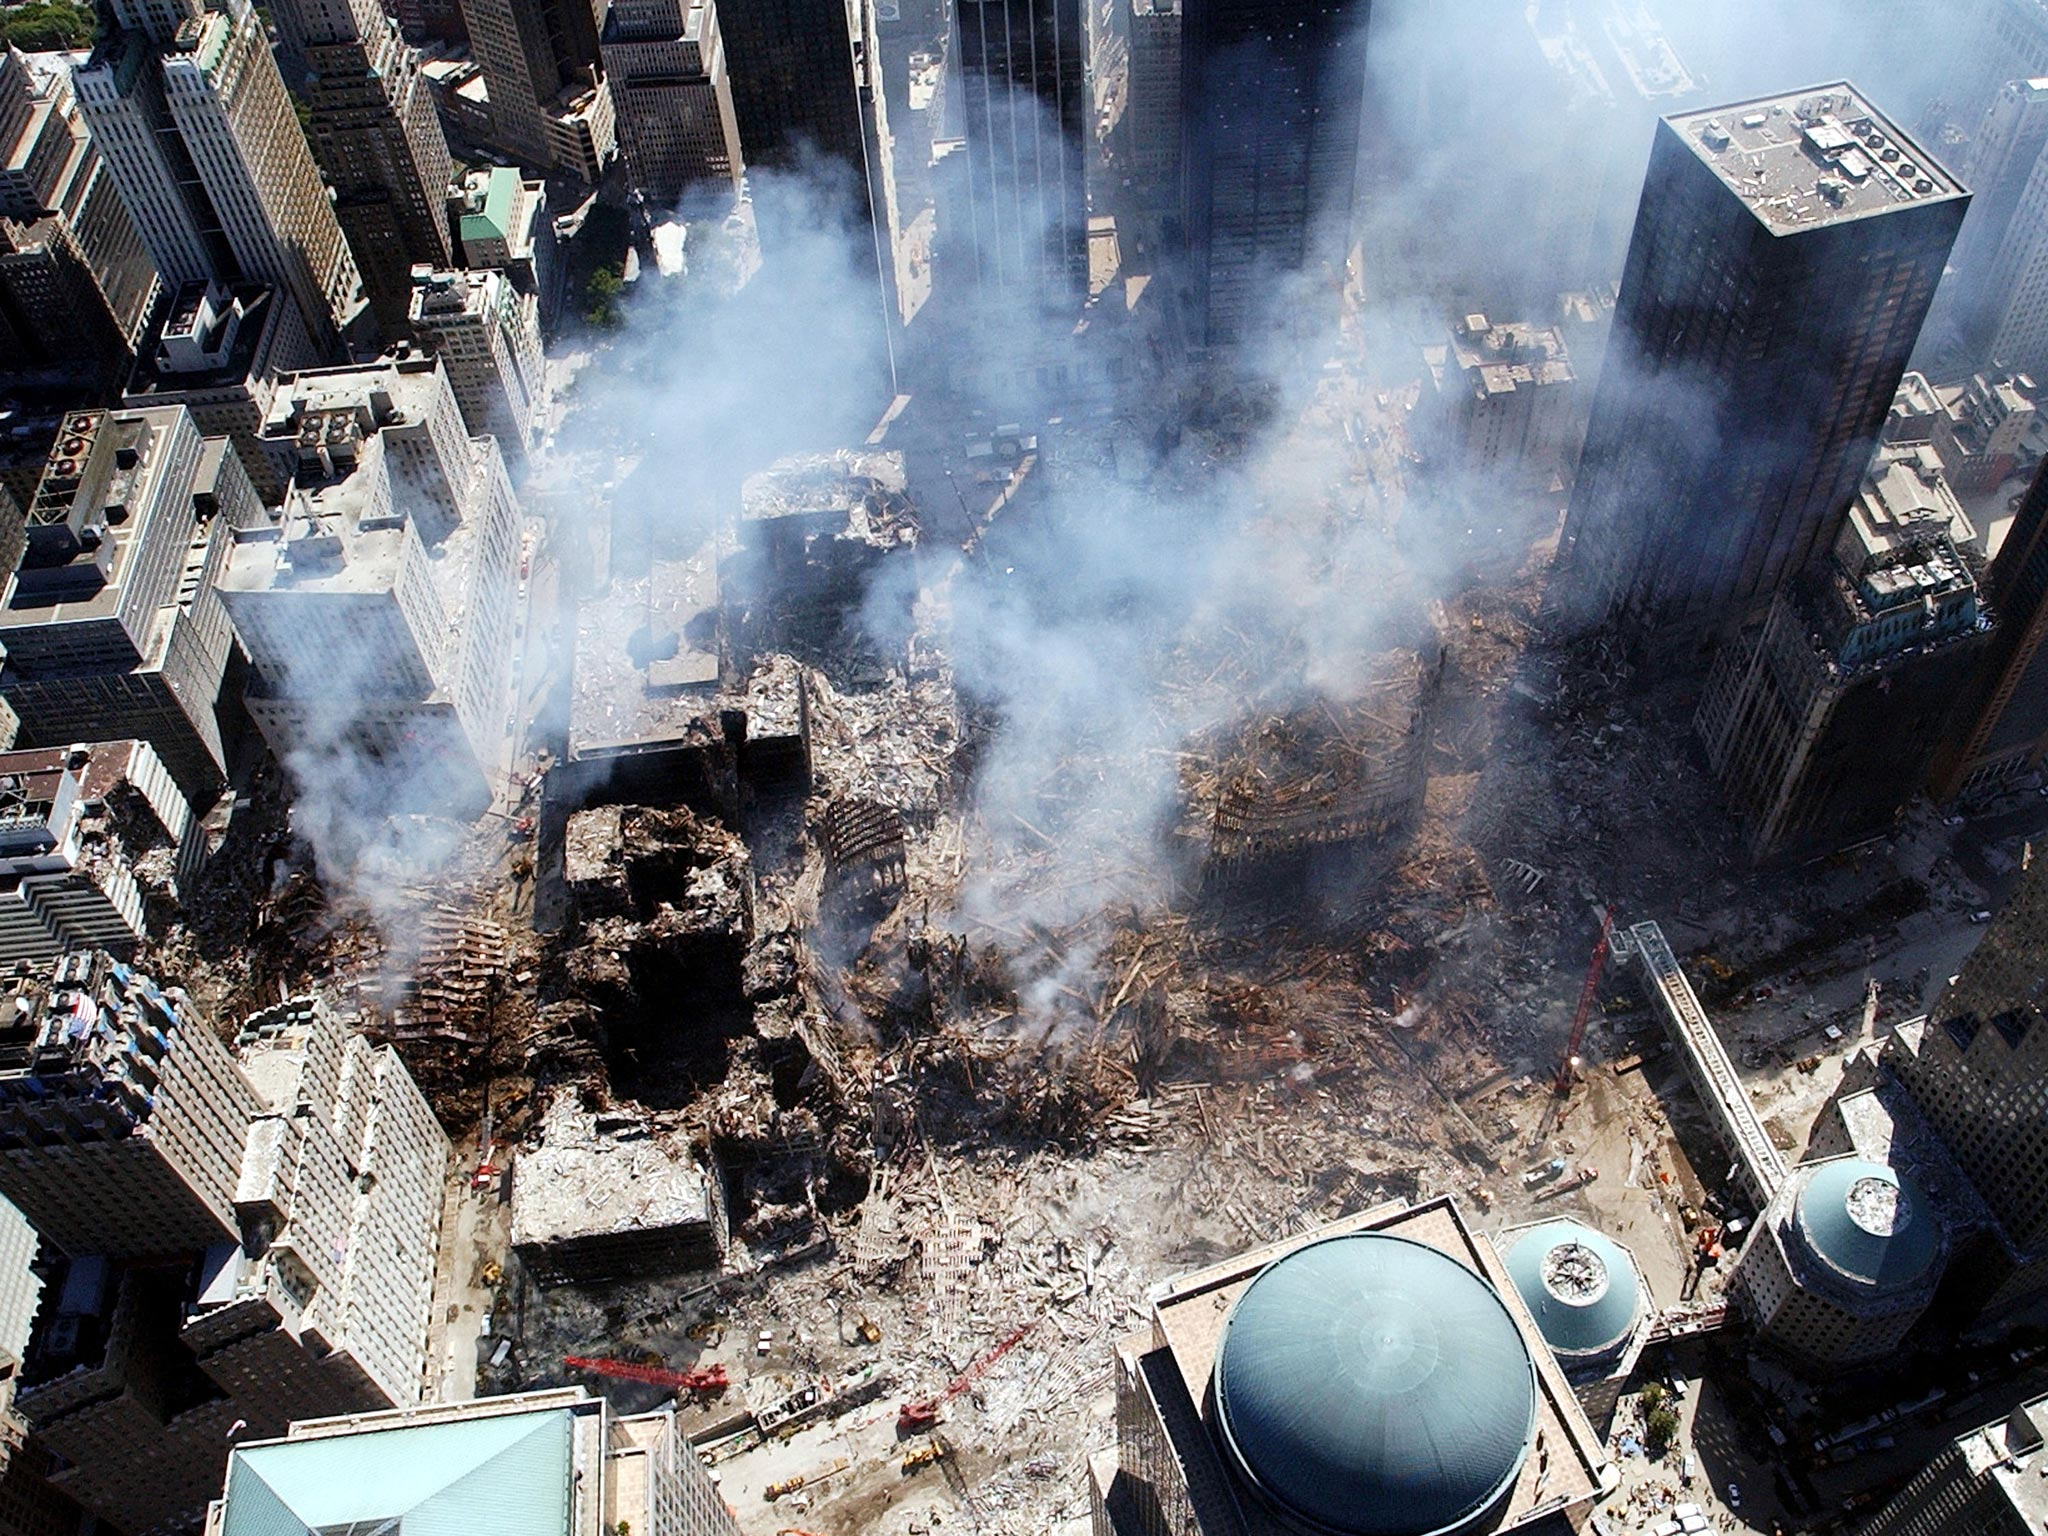 the many changes that occurred in the american society after the 911 terrorist attacks